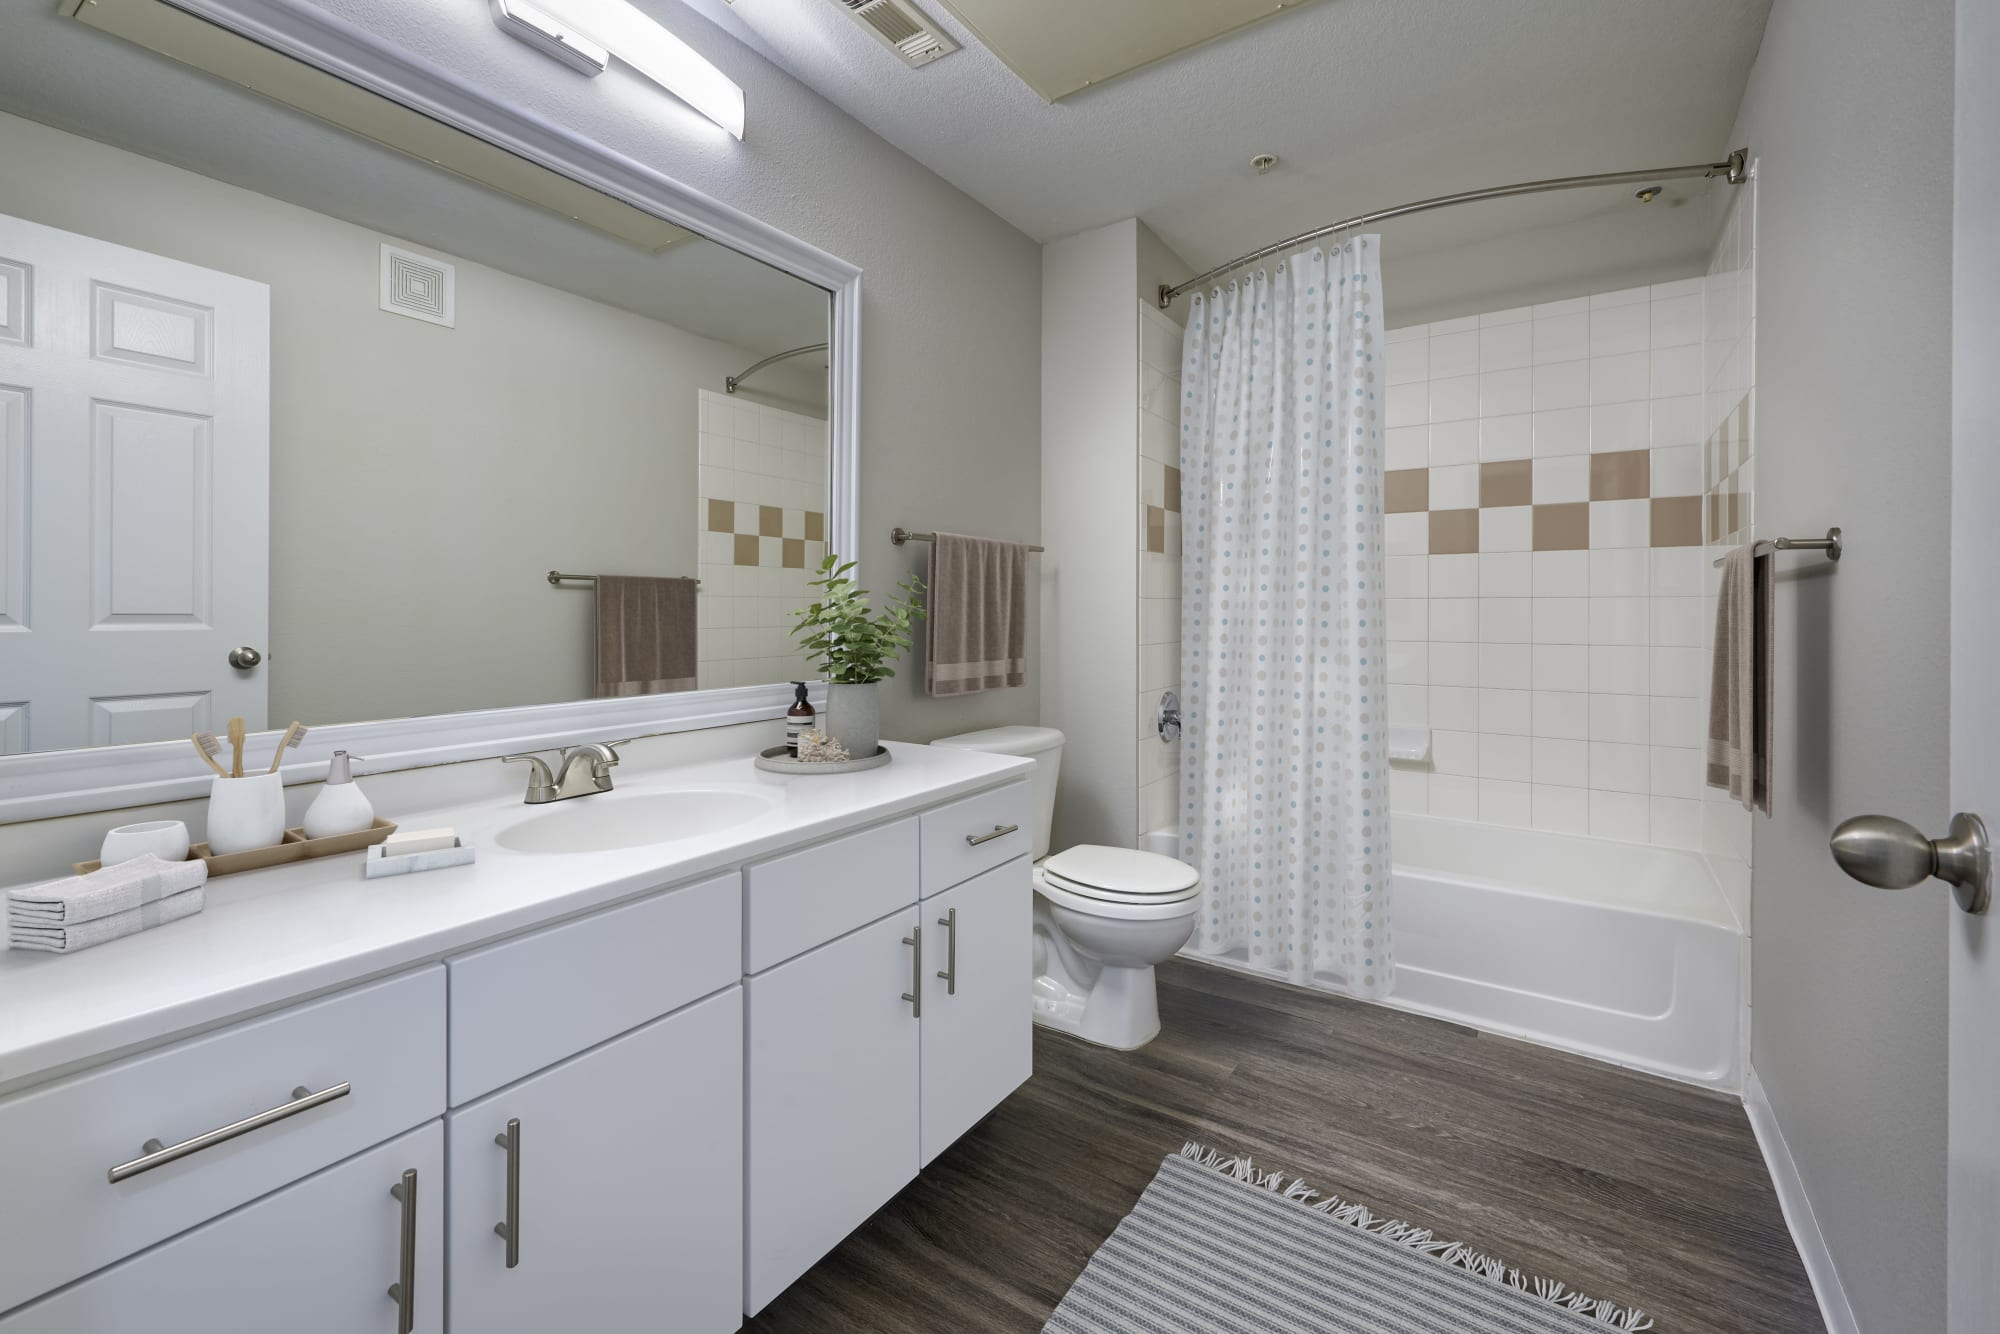 Renovated bathroom with white cabinetry at Bear Valley Park in Denver, Colorado